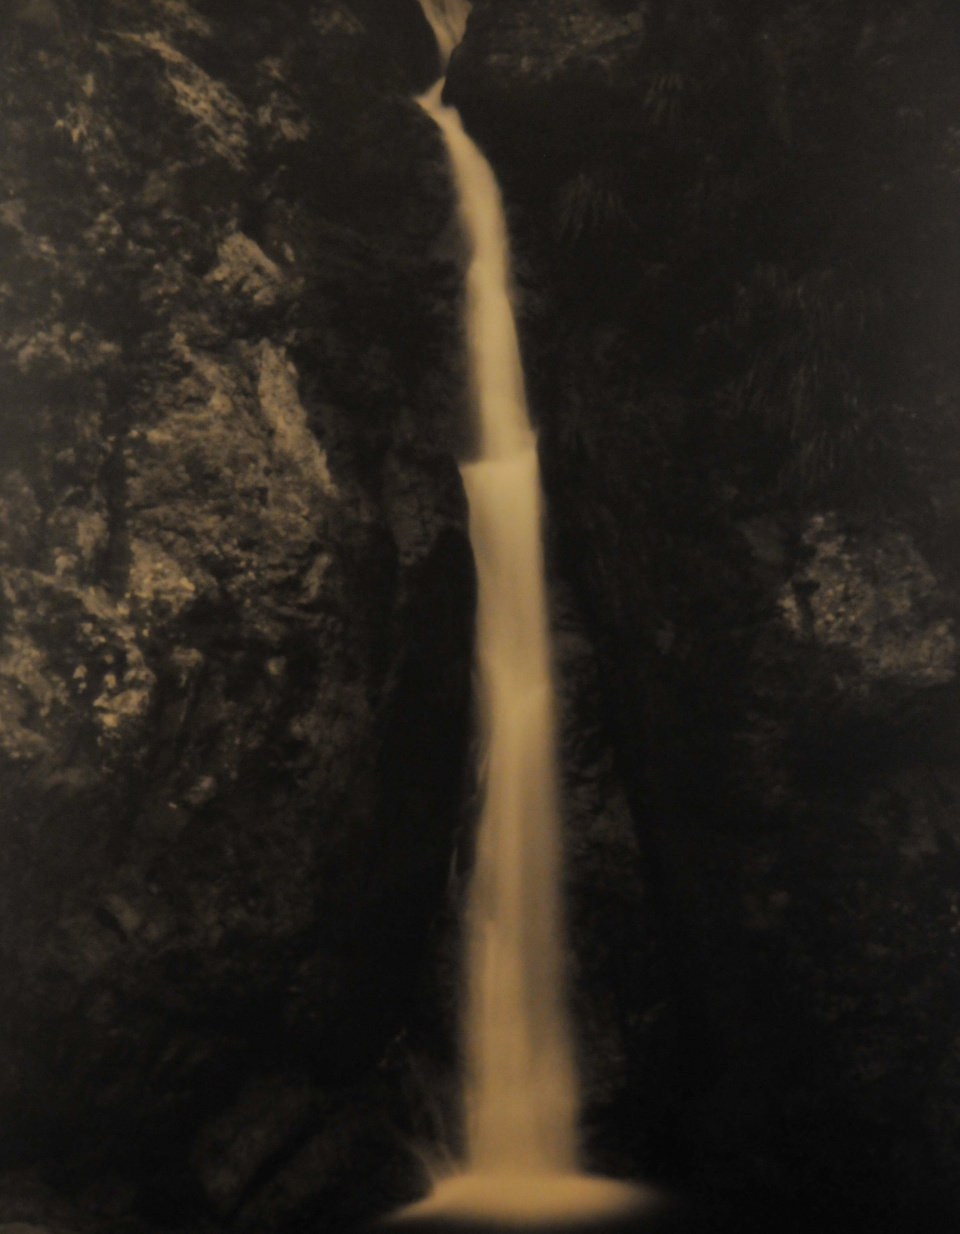 Tom Baril, Dona Juana's Leap, 2001, TB 733